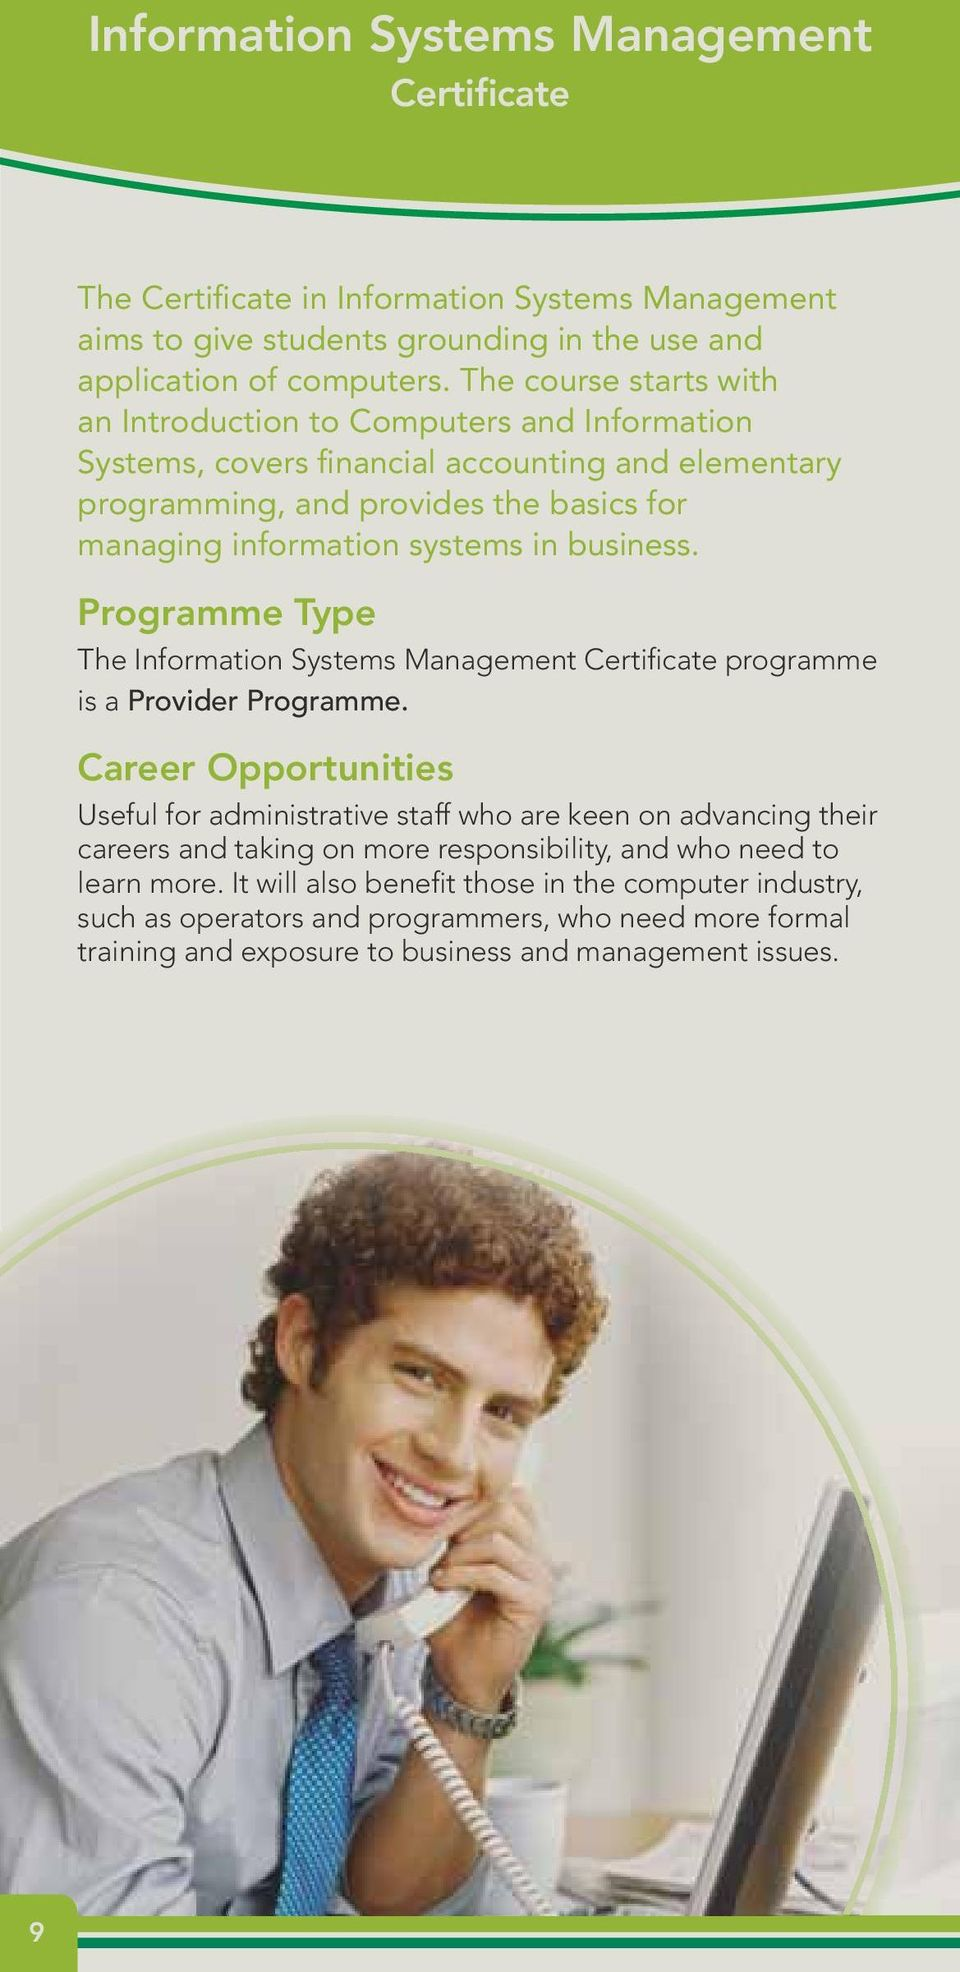 business. Programme Type The Information Systems Management Certificate programme is a Provider Programme.